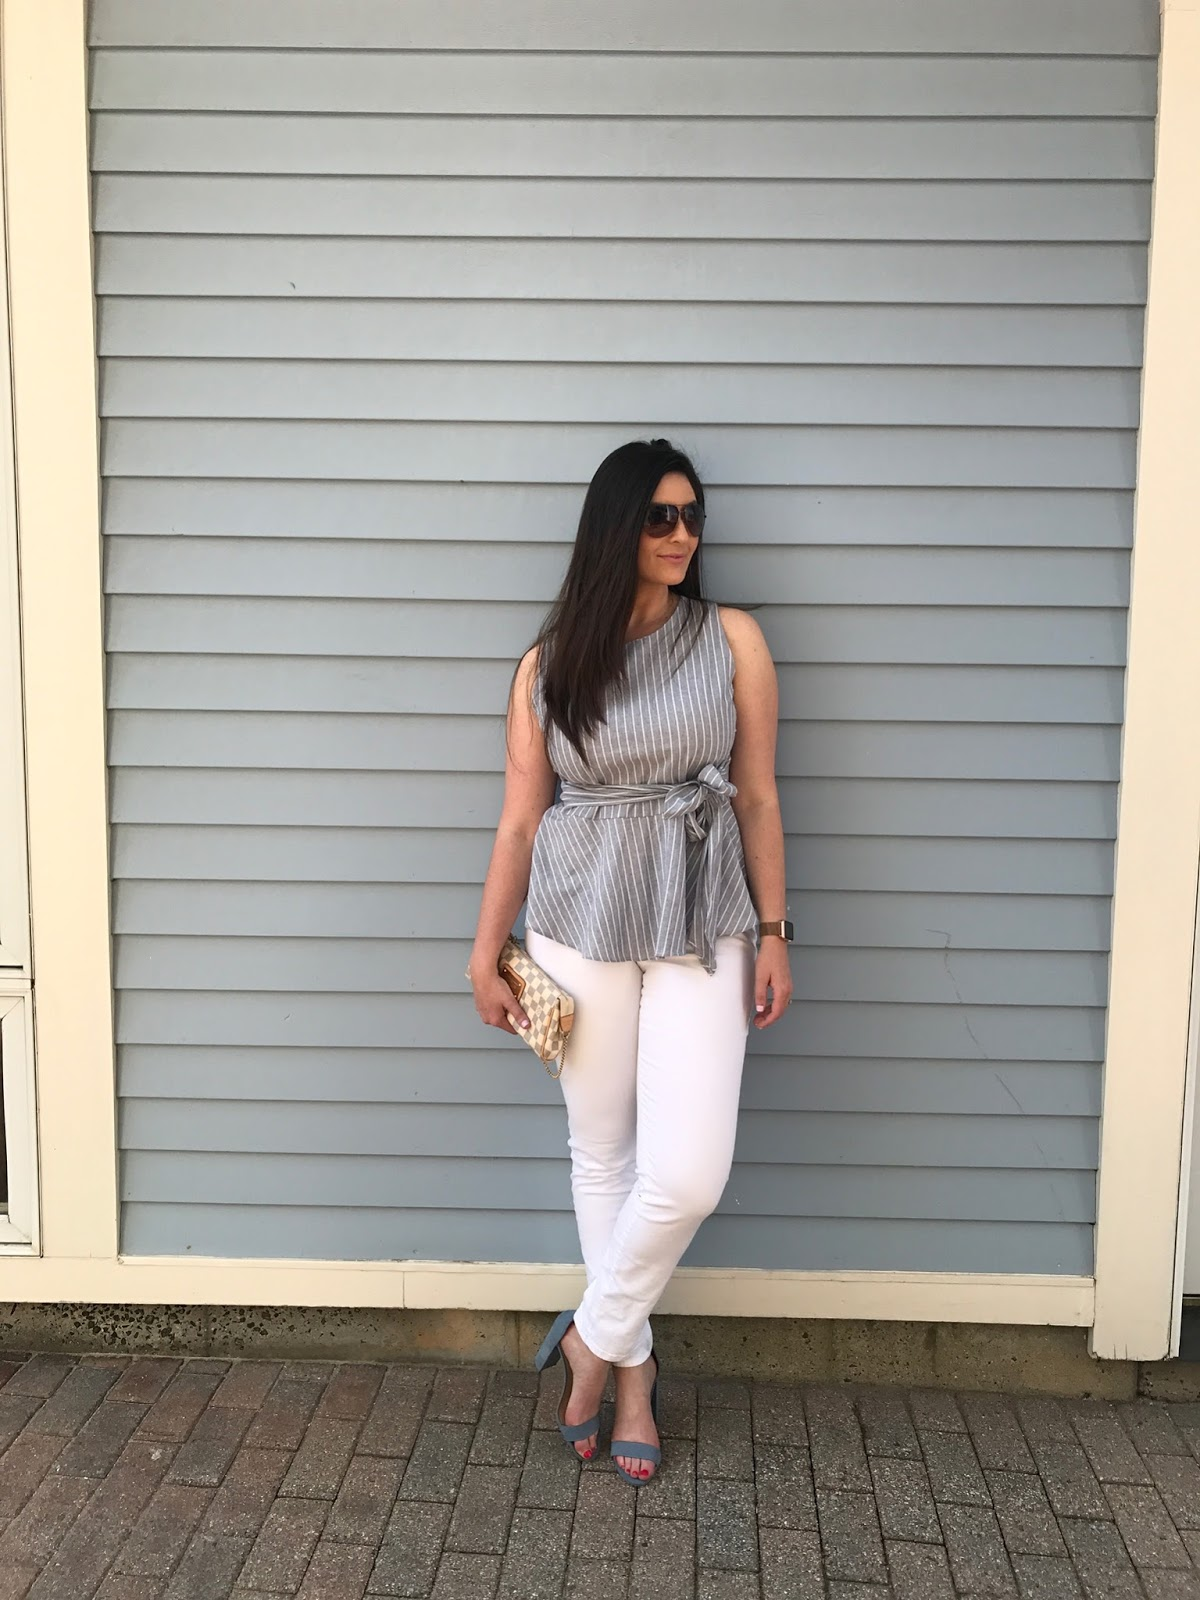 nautical outfit, what to wear in the spring, what to wear in summer, how to style white jeans, target block heels, shop the mint boutique, peplum top, how to style a peplum top, nautical inspired outfits, fourth of july outfit ideas